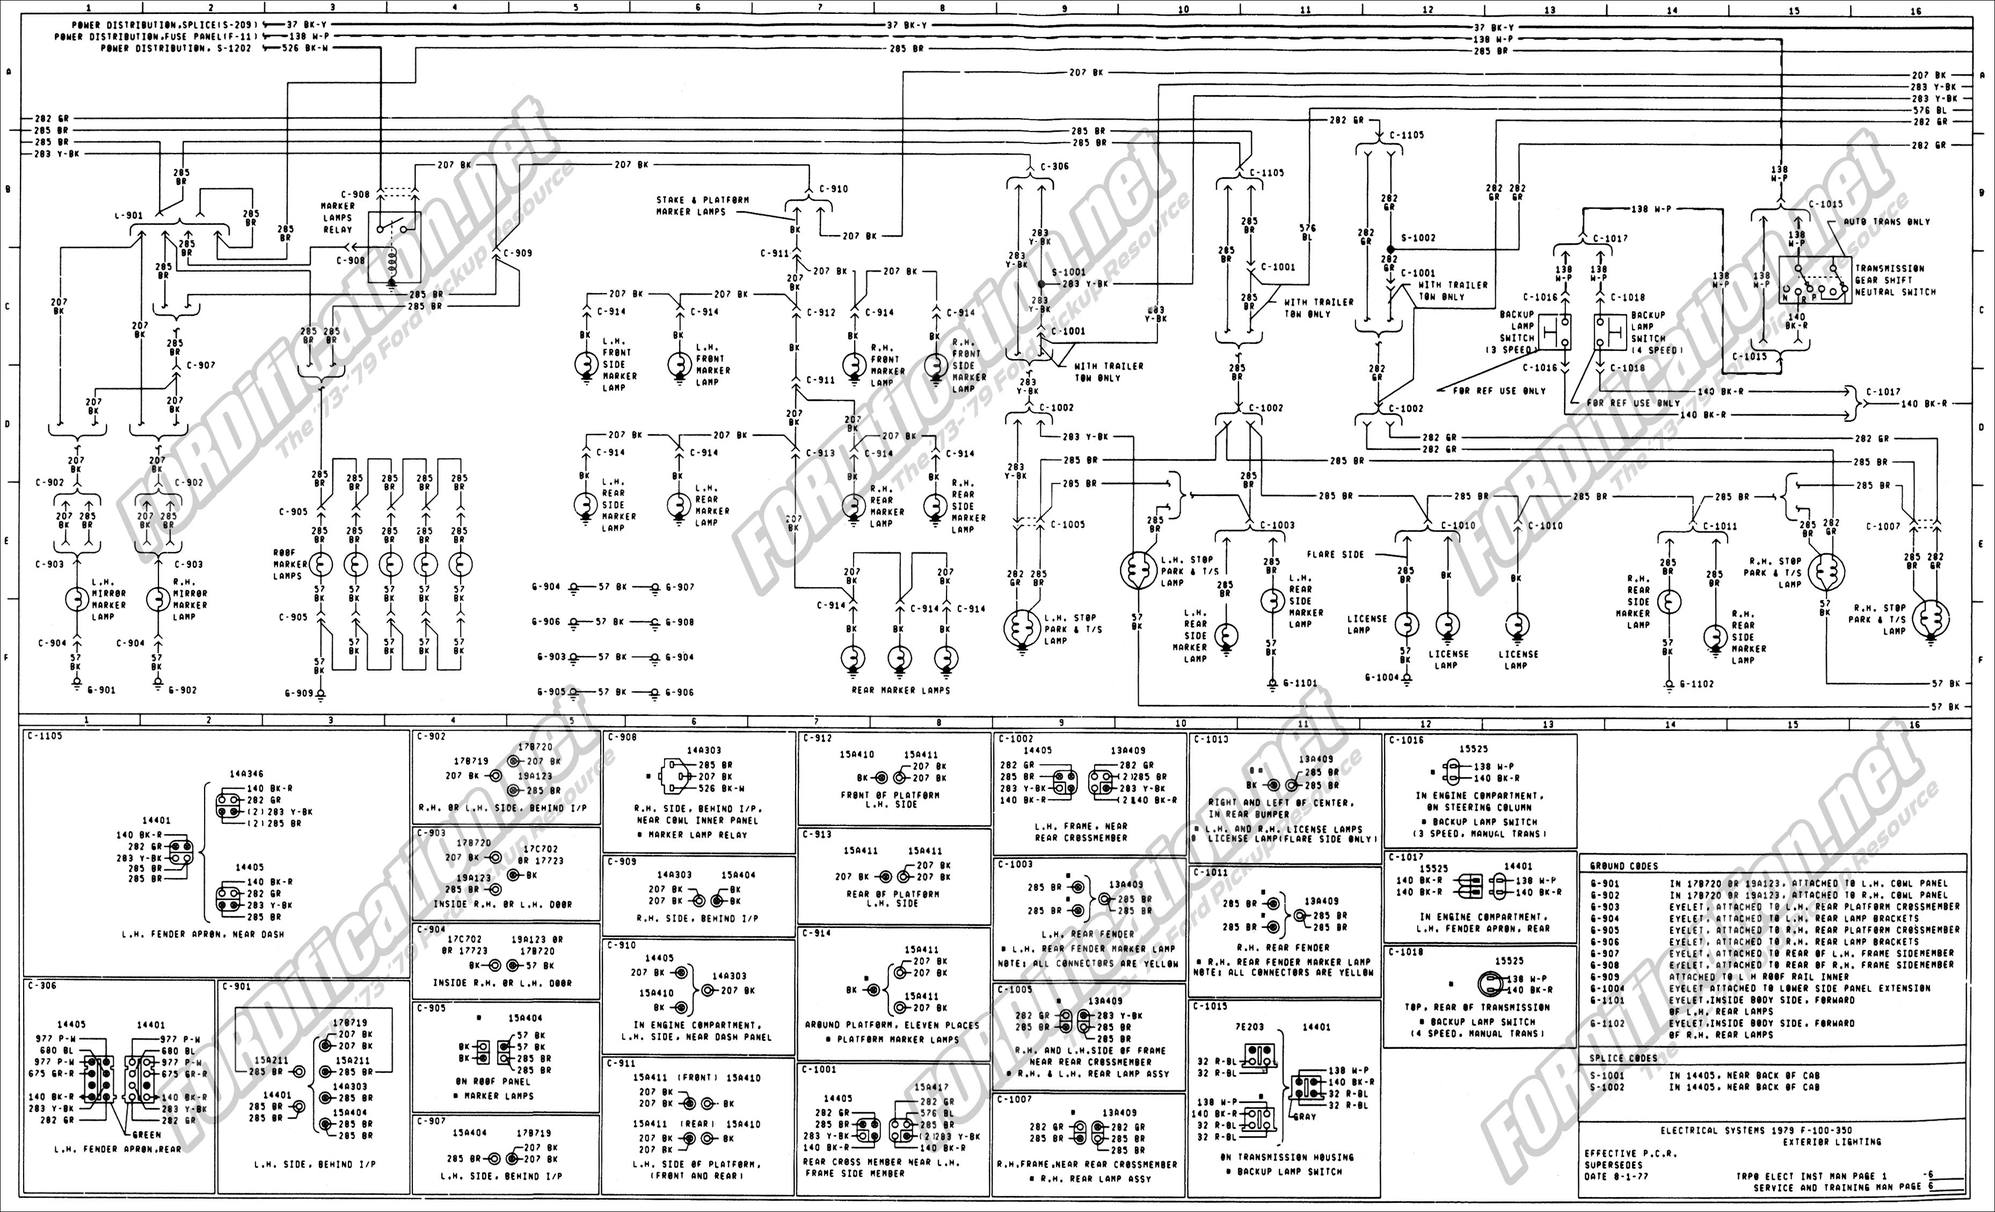 02 Ford F 250 Fuse Box Diagram Ford F 250 Ignition Switch